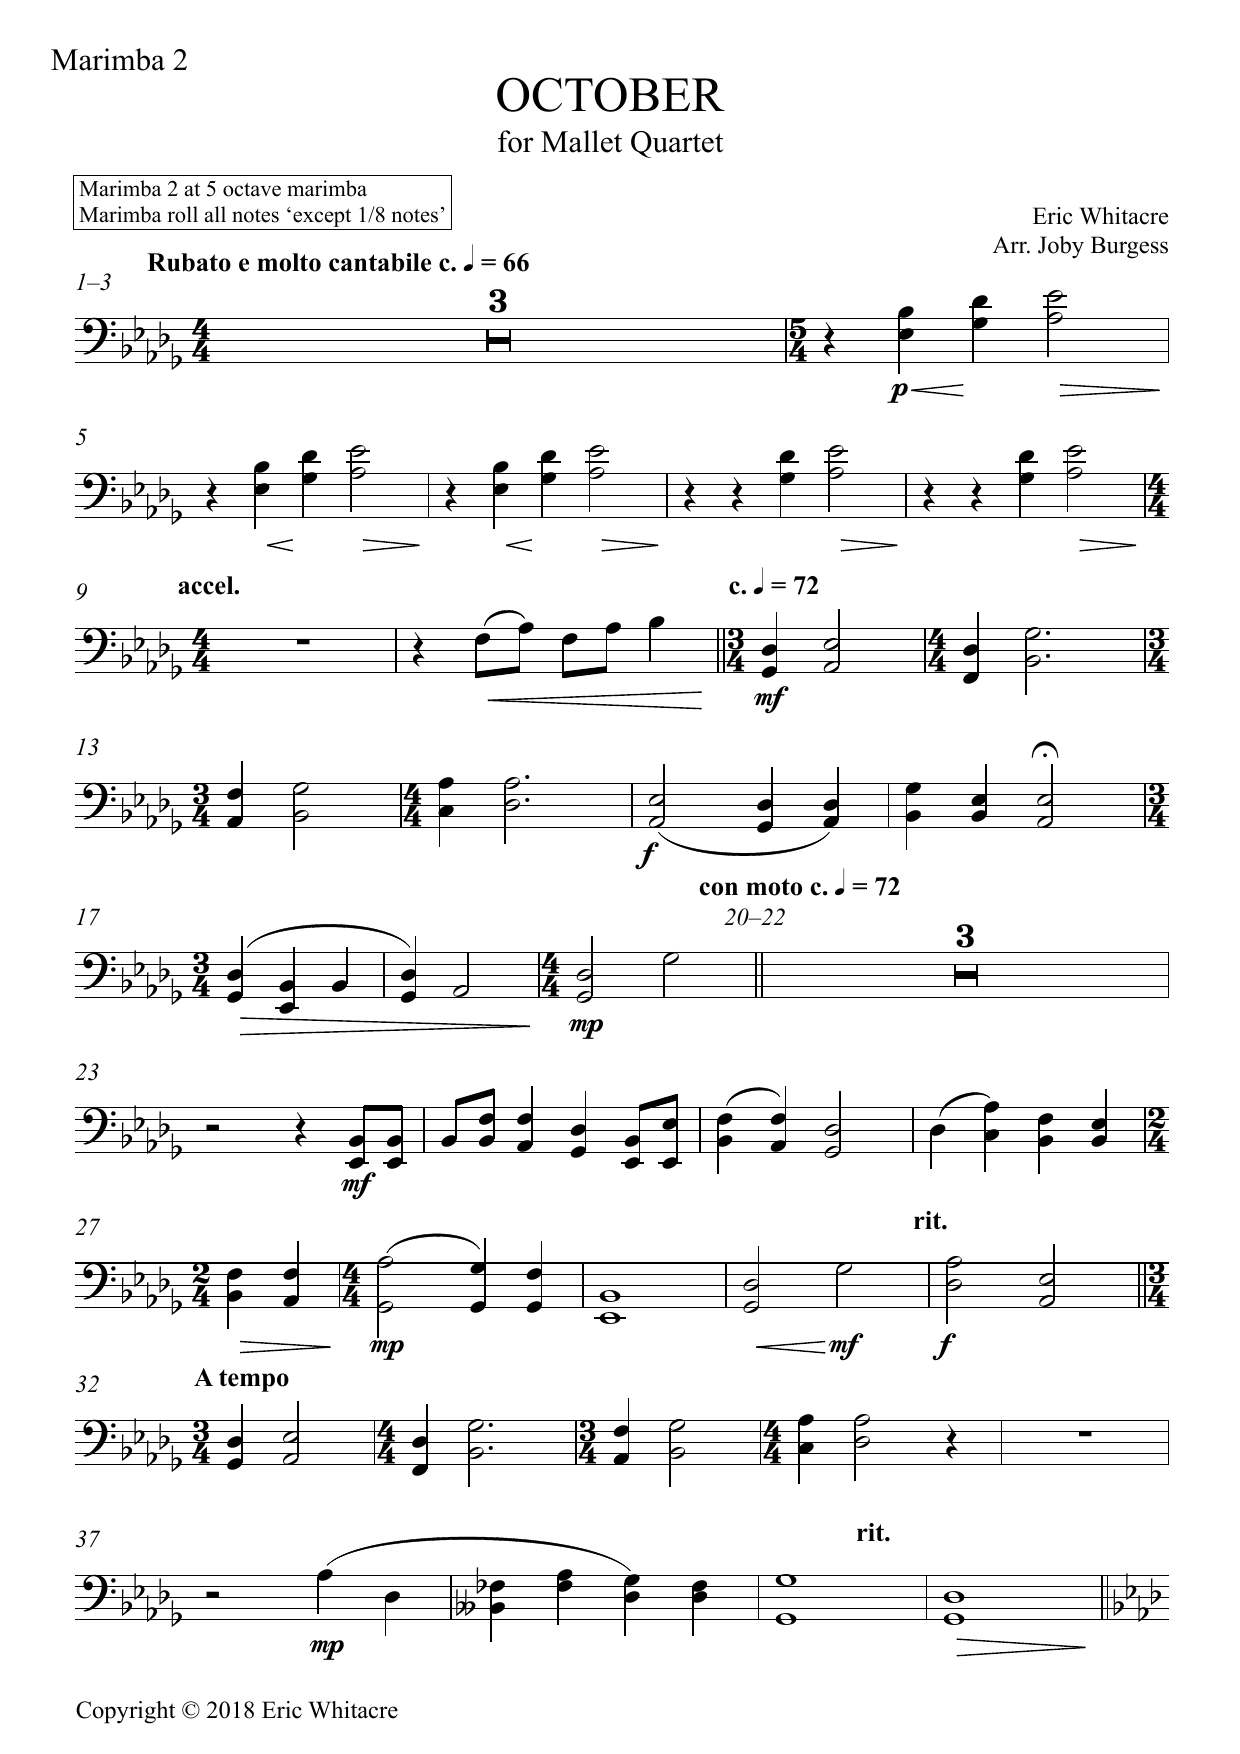 Eric Whitacre October (Alleluia) for Mallet Quartet (arr. Joby Burgess) - Marimba 2 sheet music preview music notes and score for Percussion Ensemble including 3 page(s)